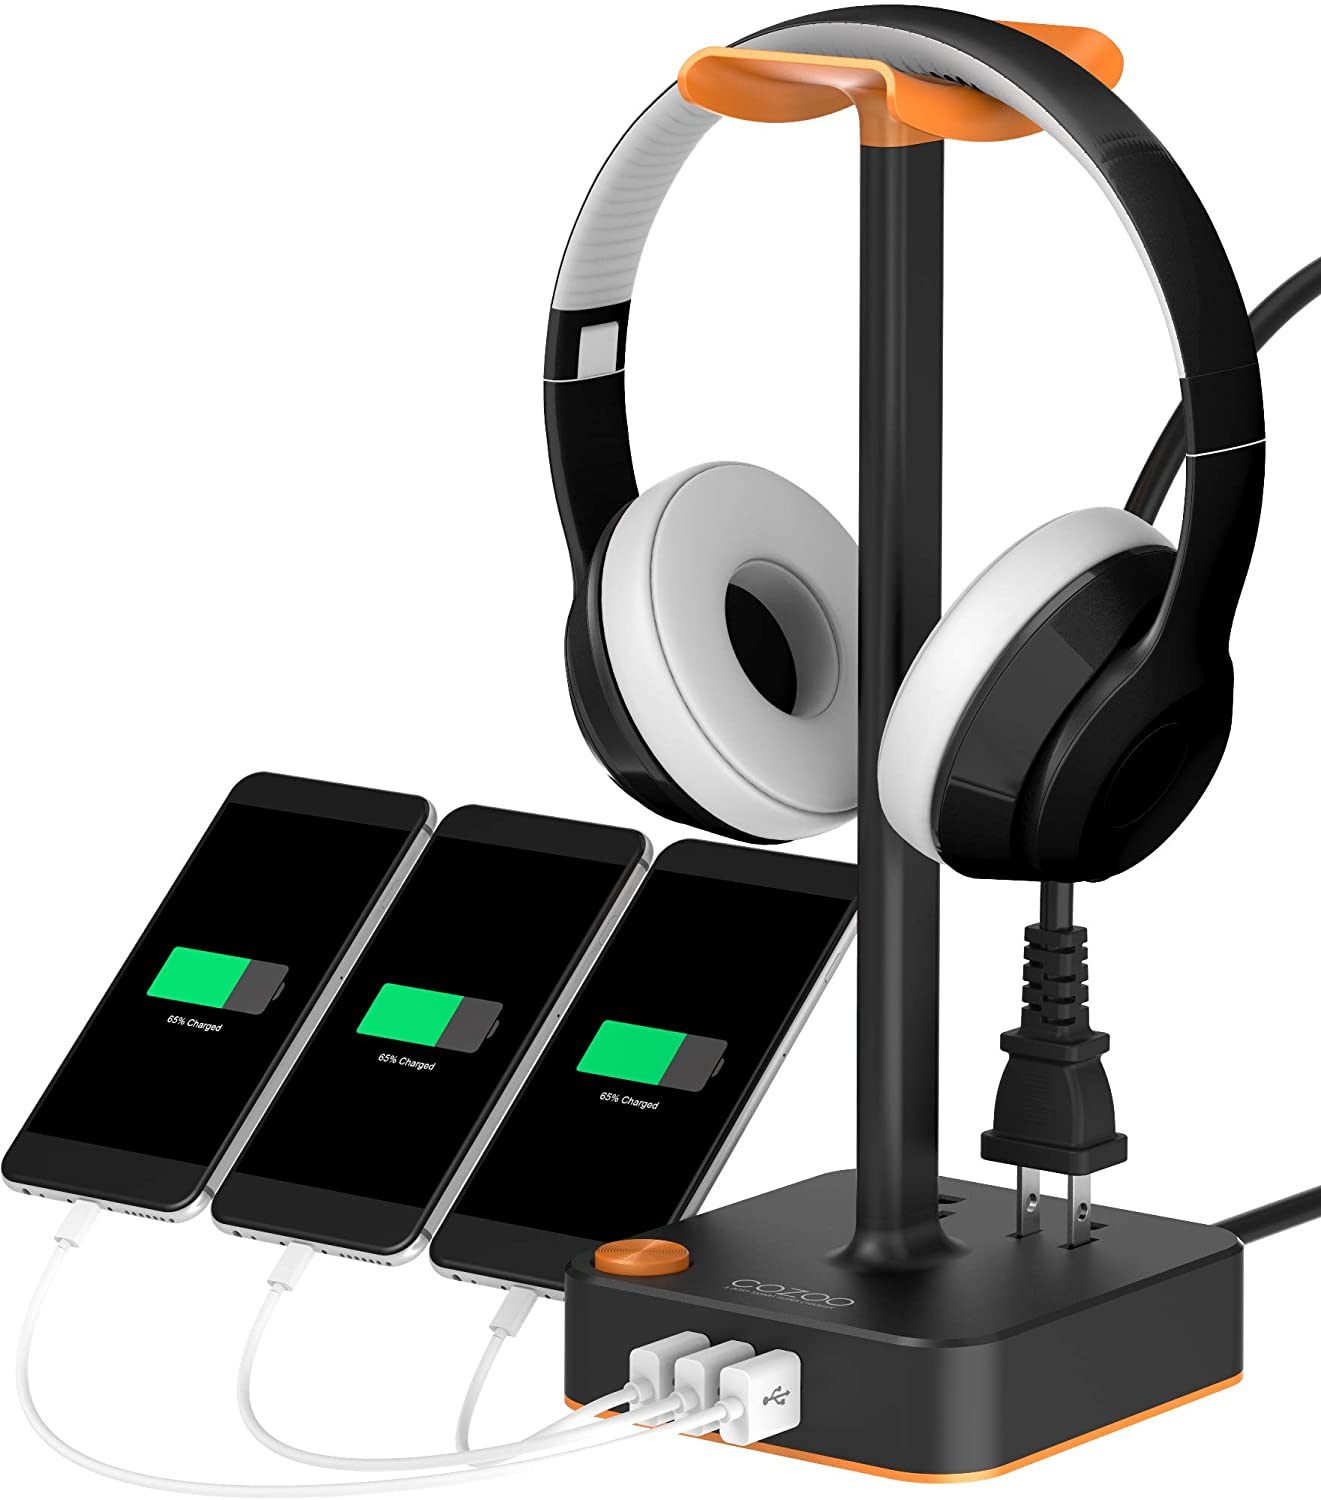 Headphone Stand with USB Charge